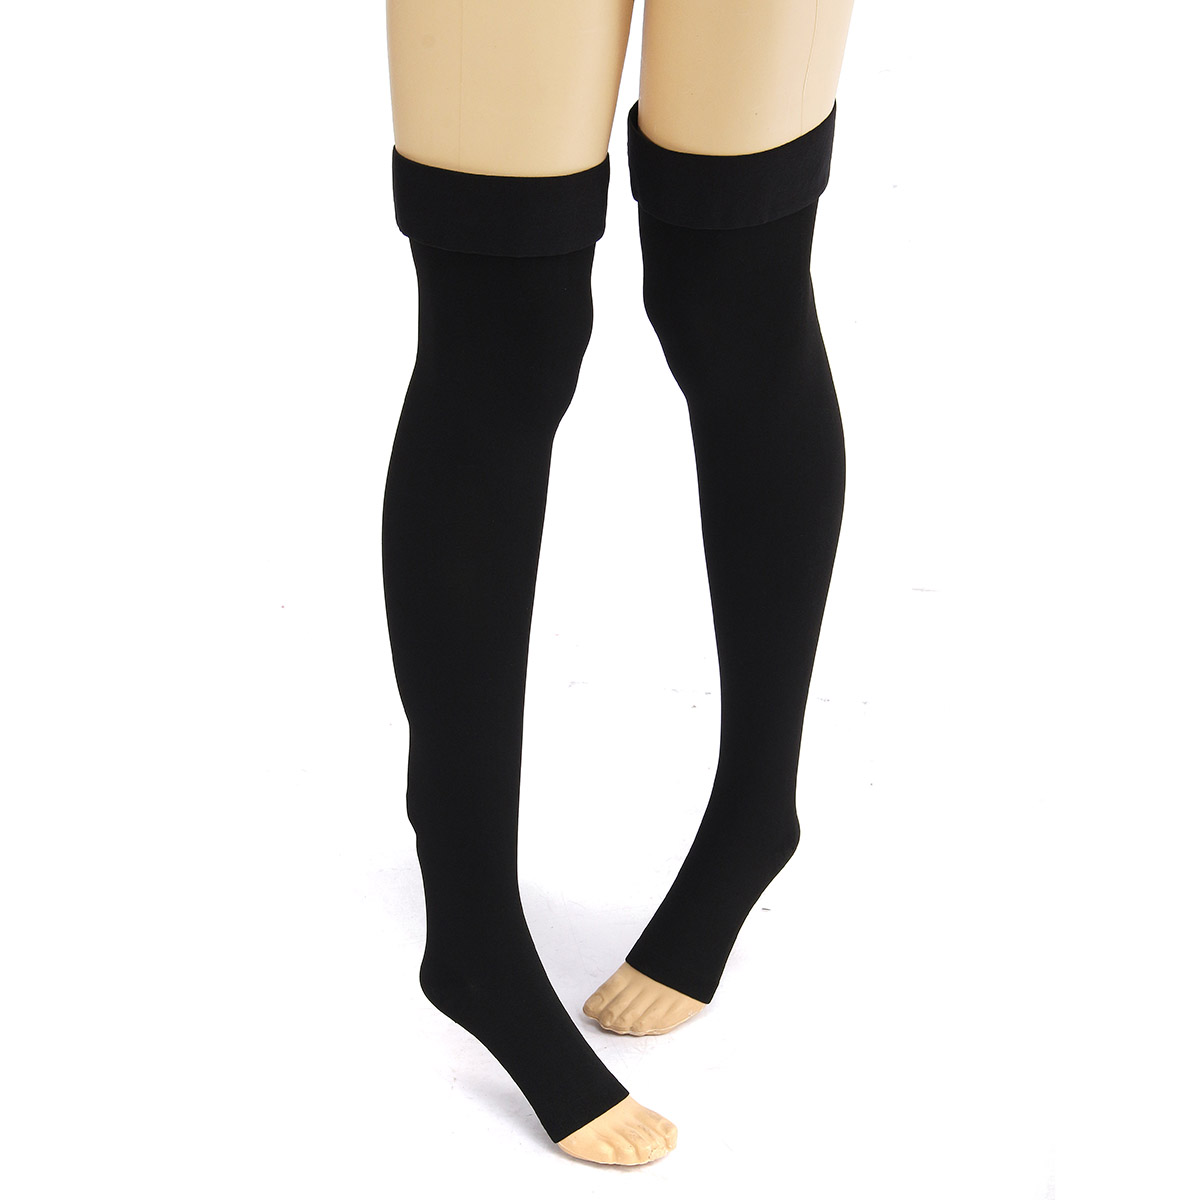 Black Anti Skip Compression Thigh Stocking Prevent Varicose Vein Socks Pain Relief Open Toe